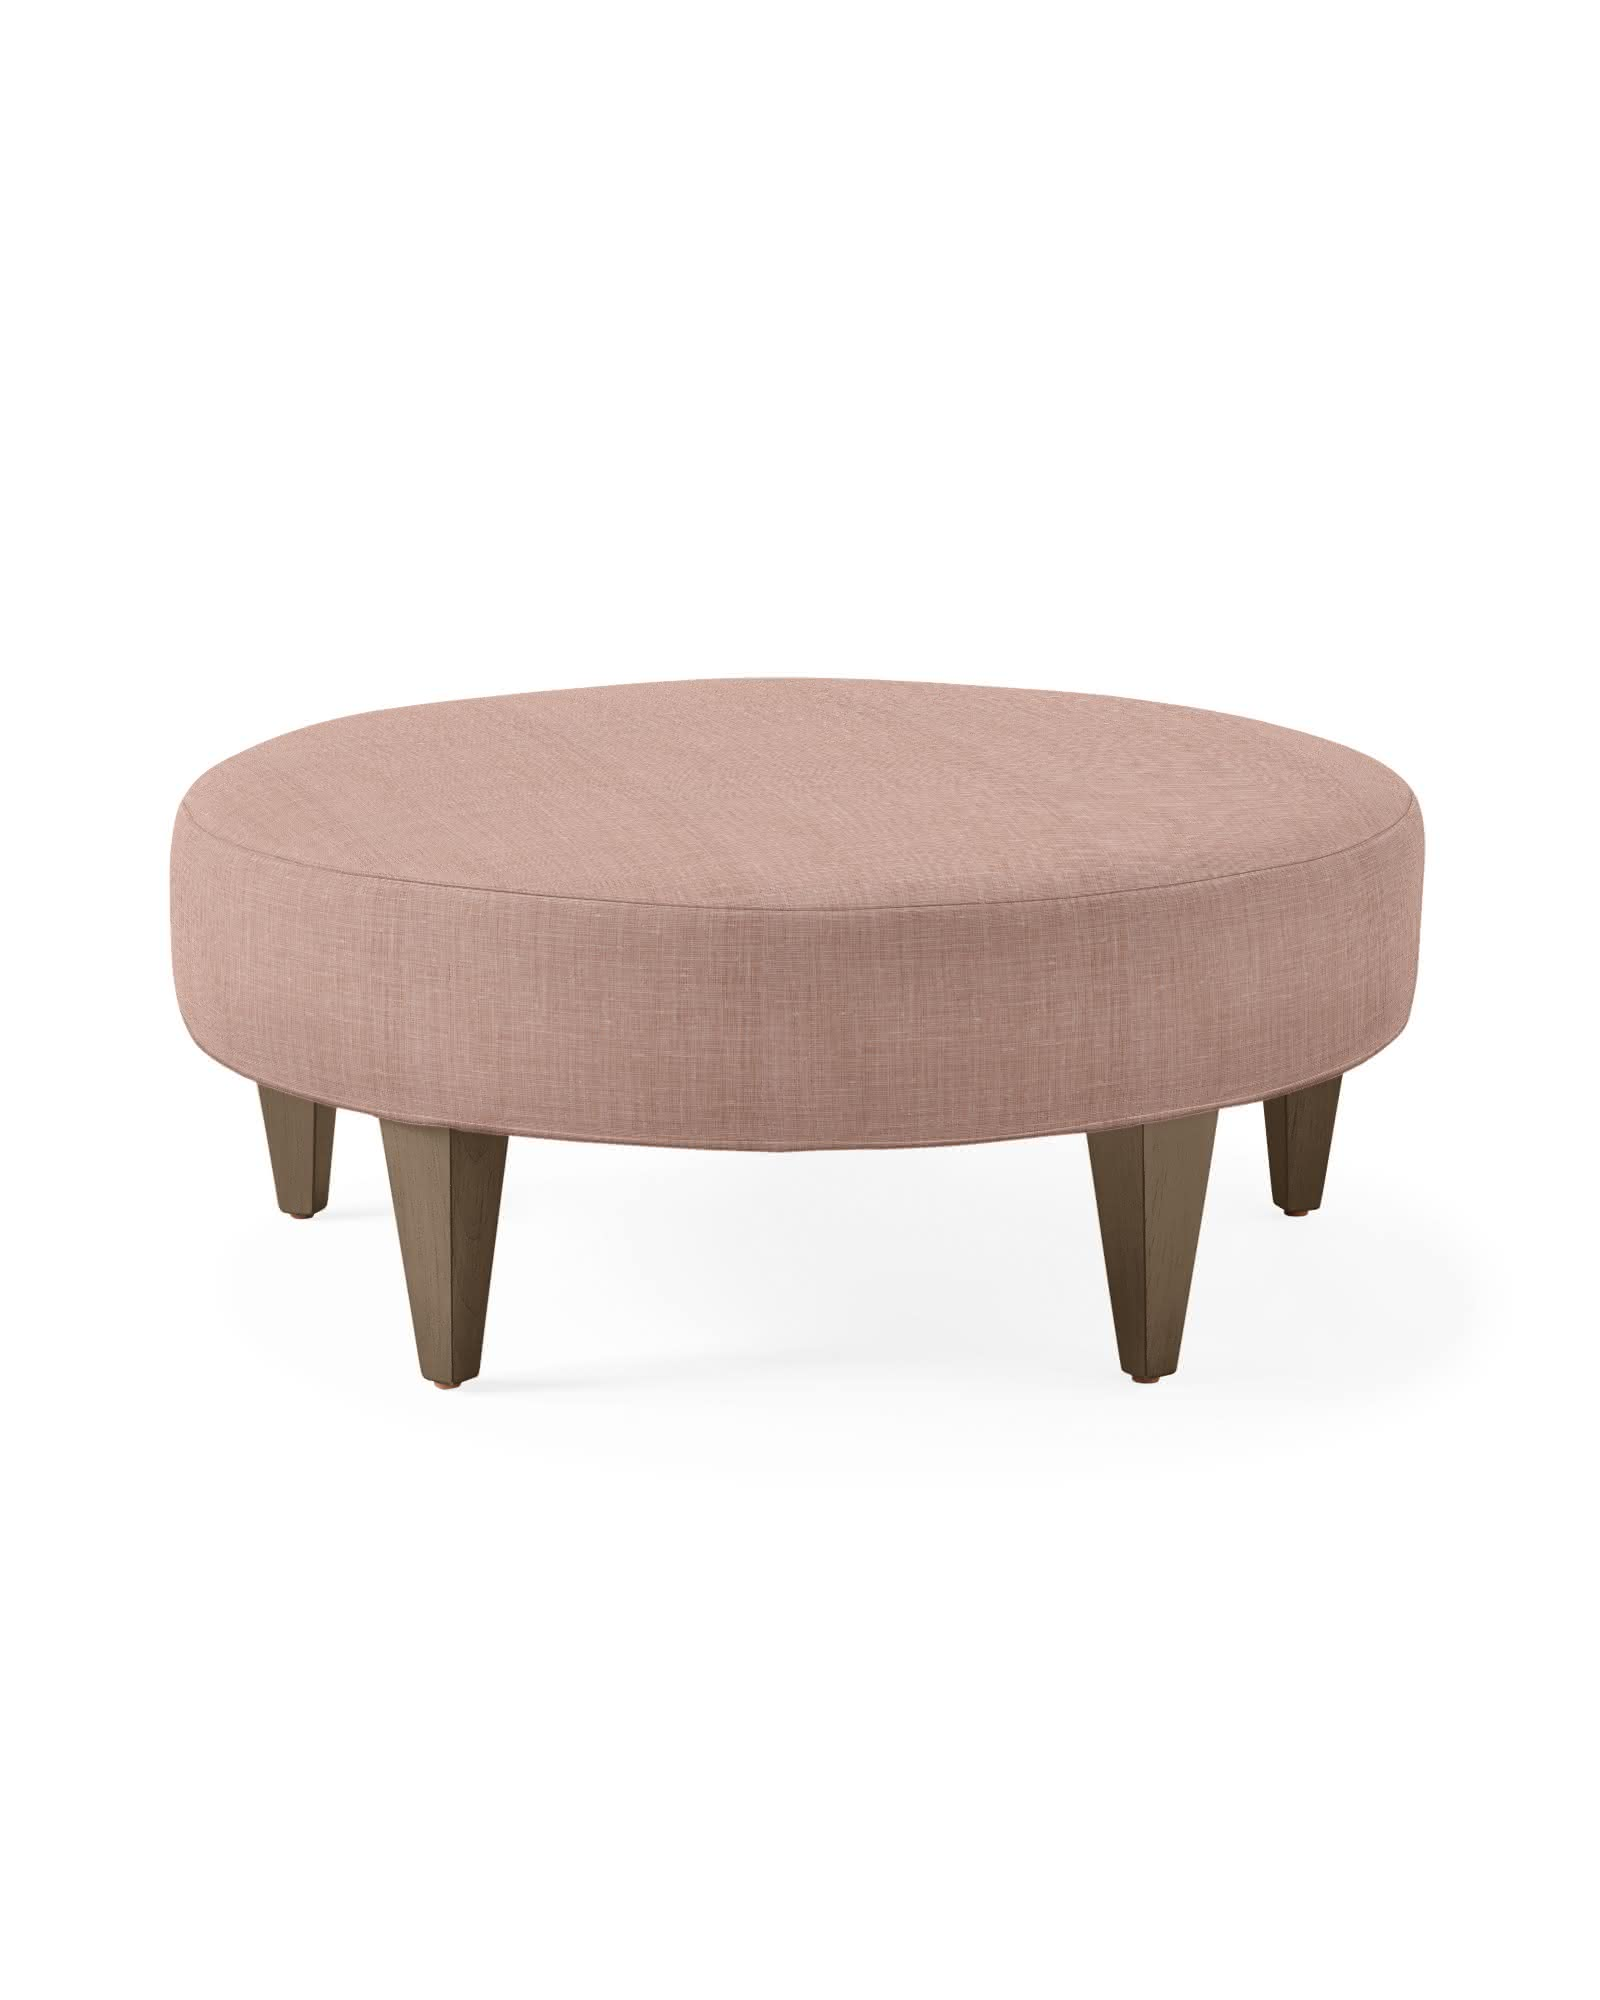 Round Chelsea Ottoman - Blush Washed Linen,